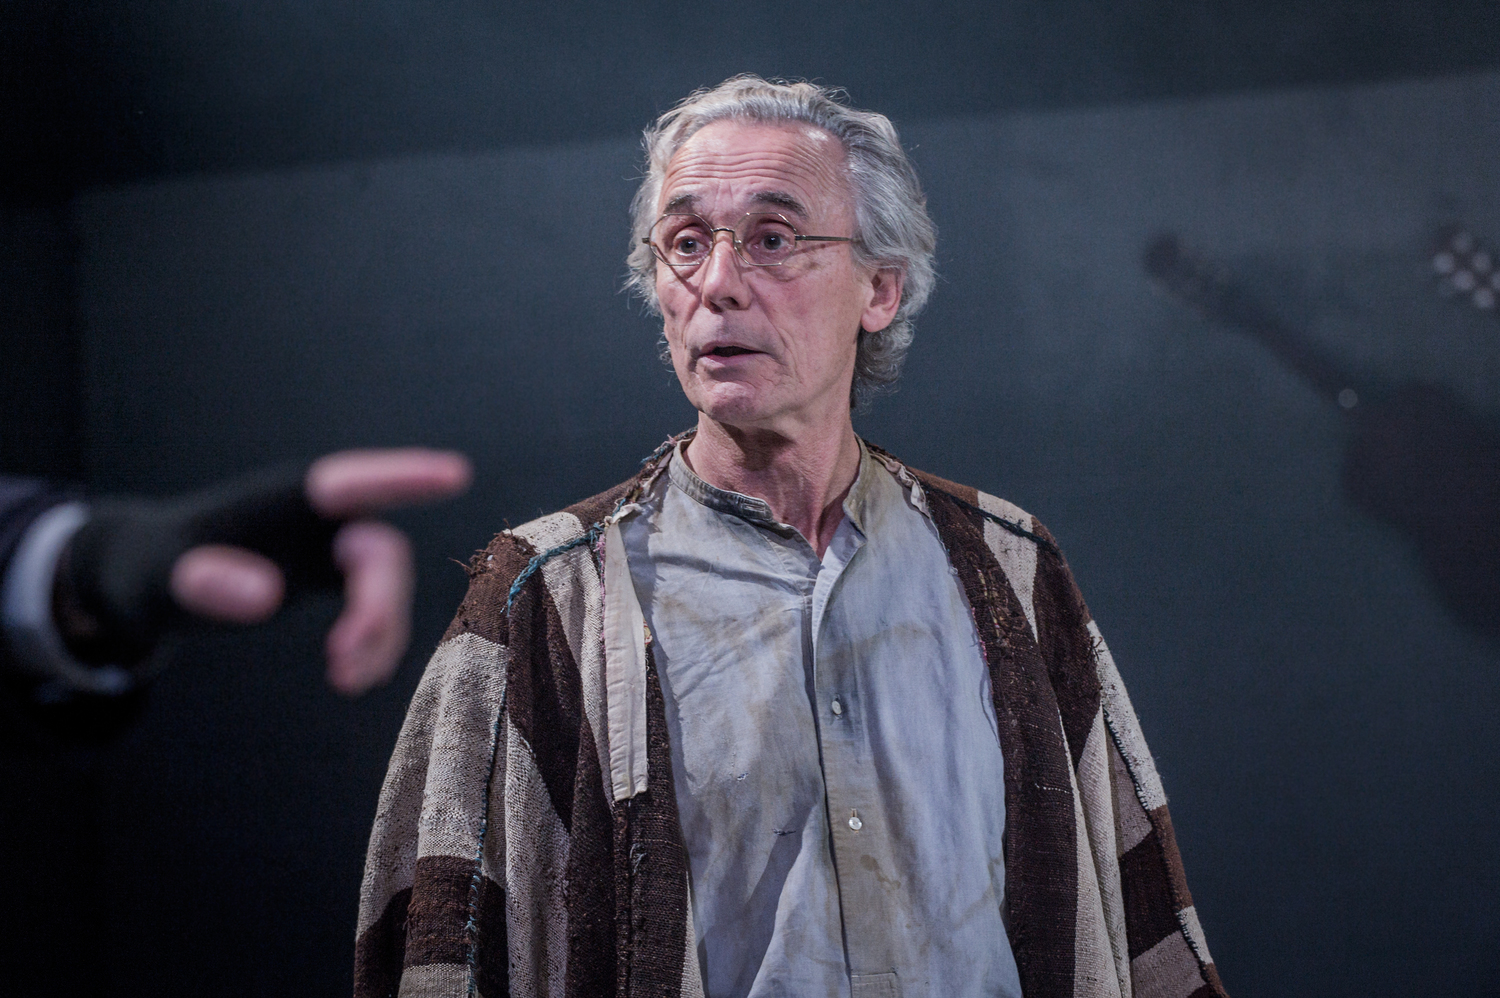 Steven Crossley in As You Like It, composed by Jude Obermüller (photo by Robert Workman)